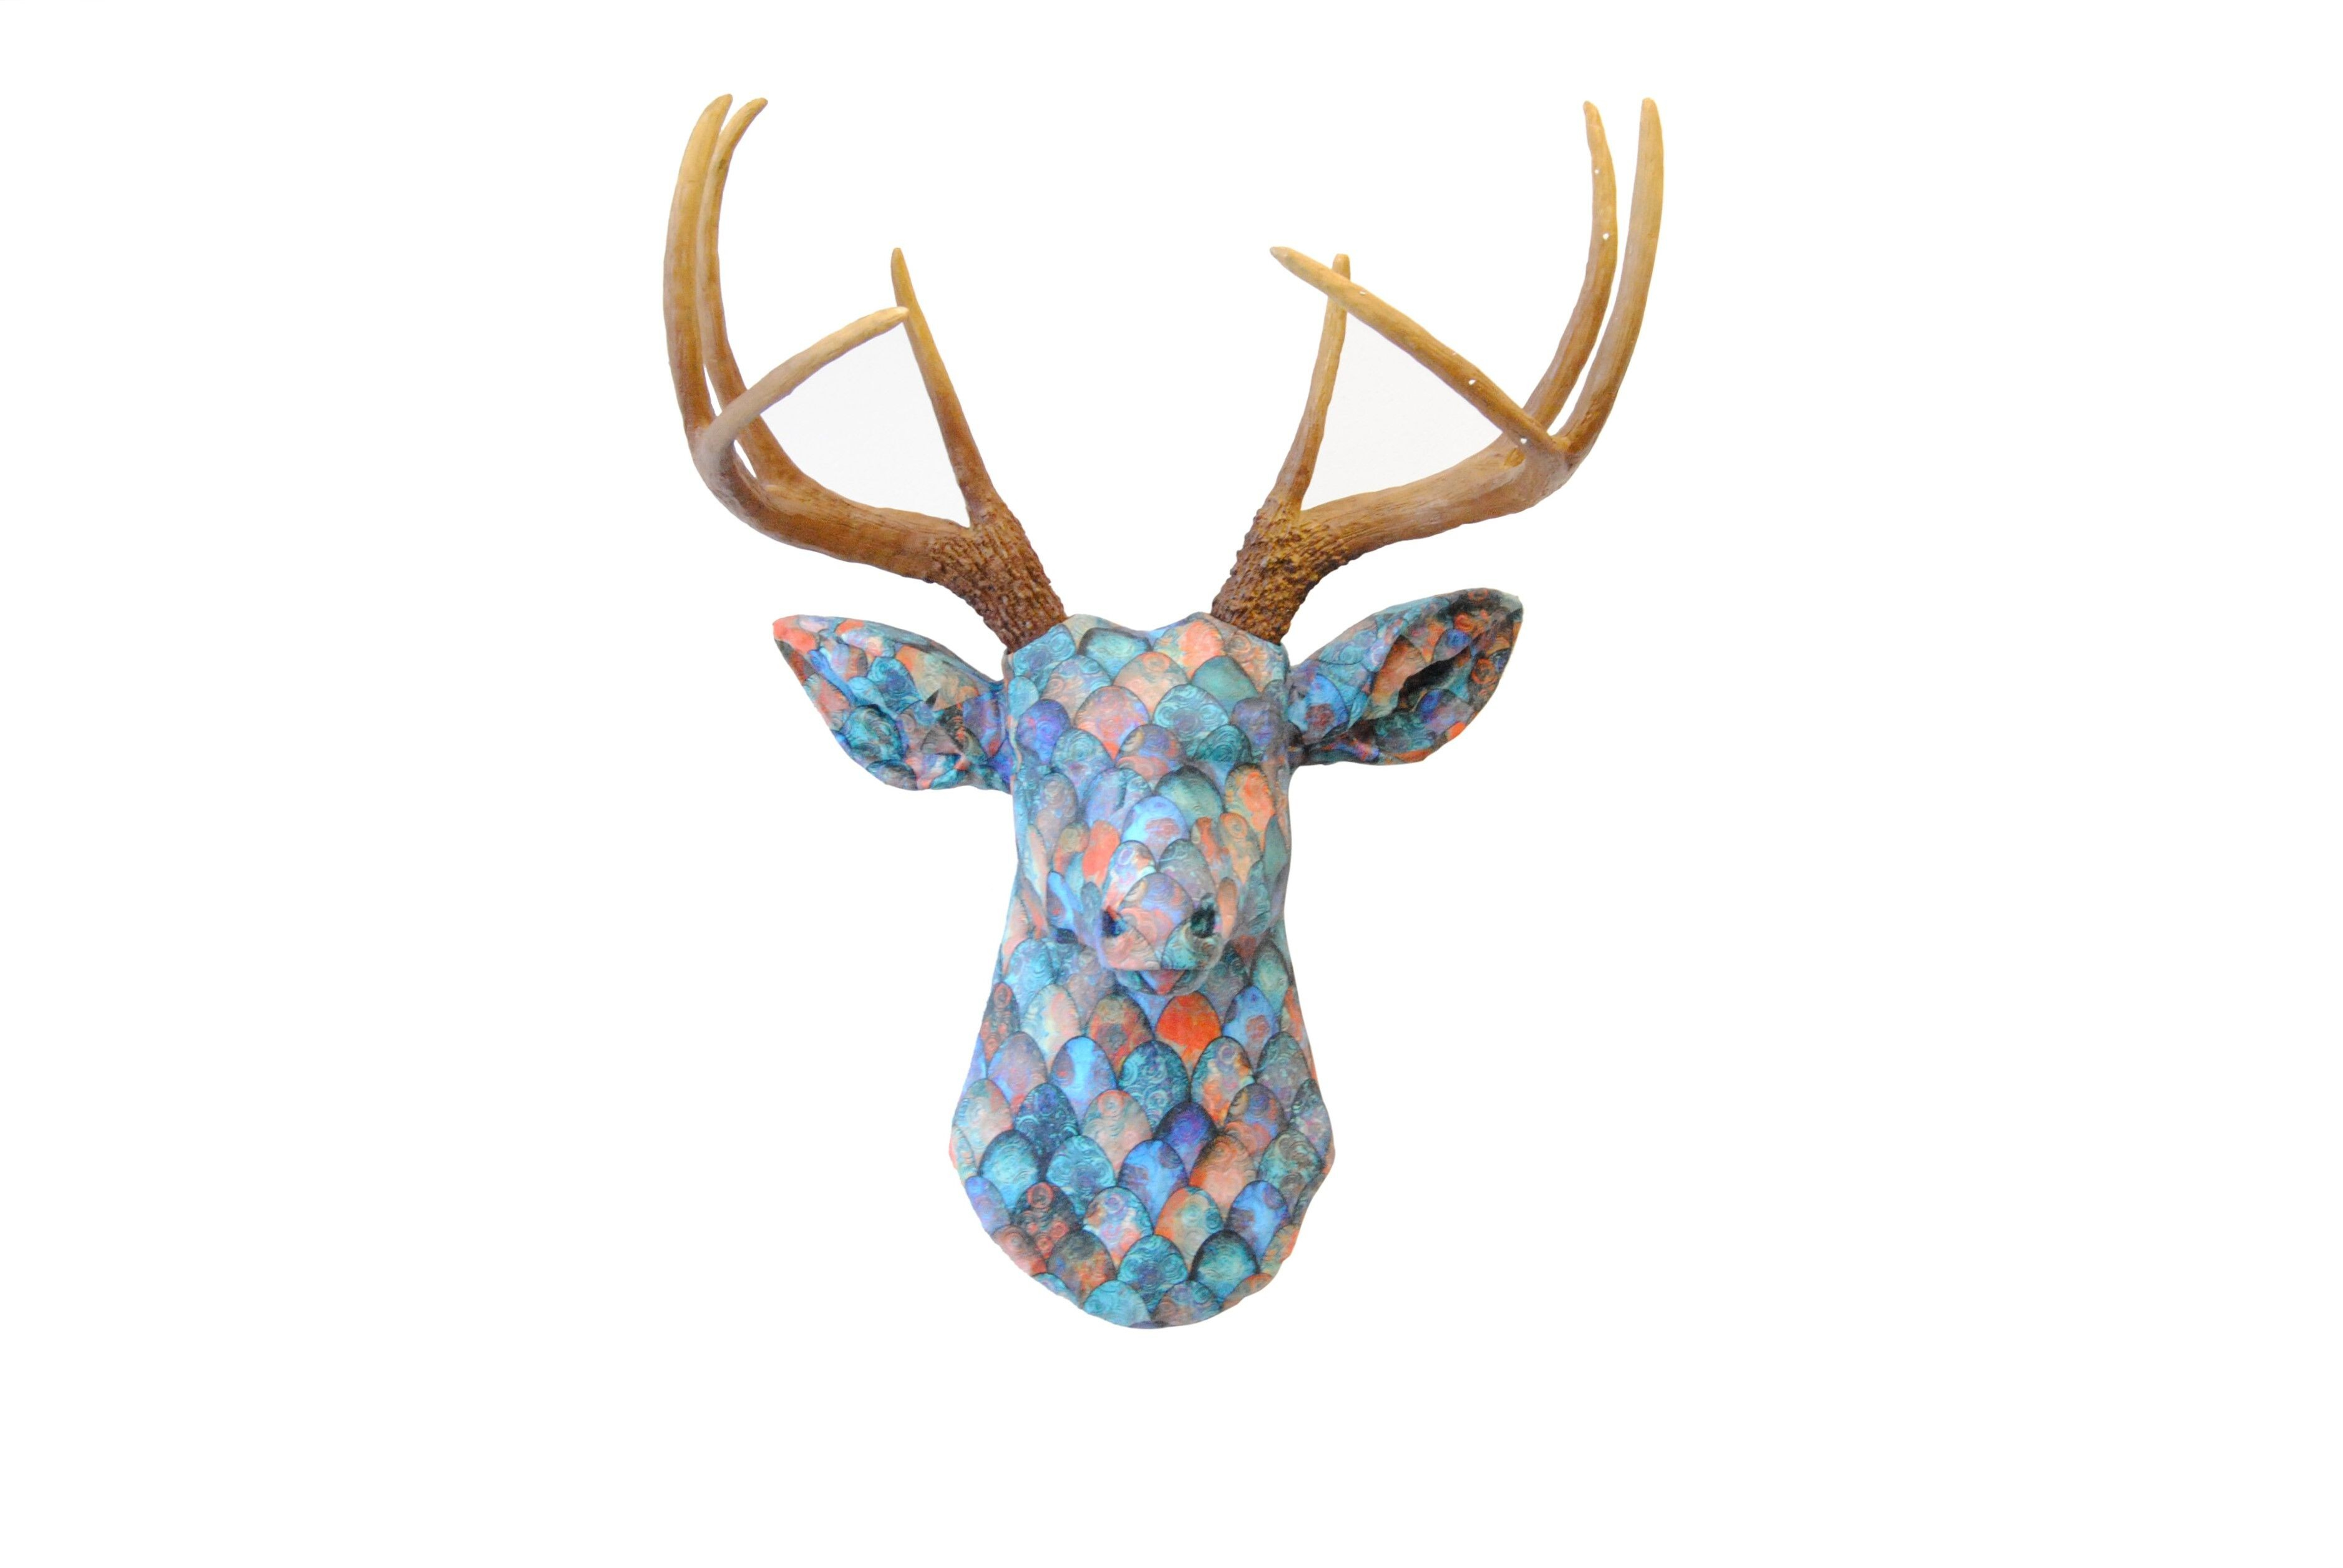 Multi Colored Dragon Scale Fabric Deer Head Brown Antlers Chic Fabric Decor Faux Taxidermy Stag Head Wall Mount In Large Deer Head Faux Taxidermy Wall Decor (View 17 of 30)